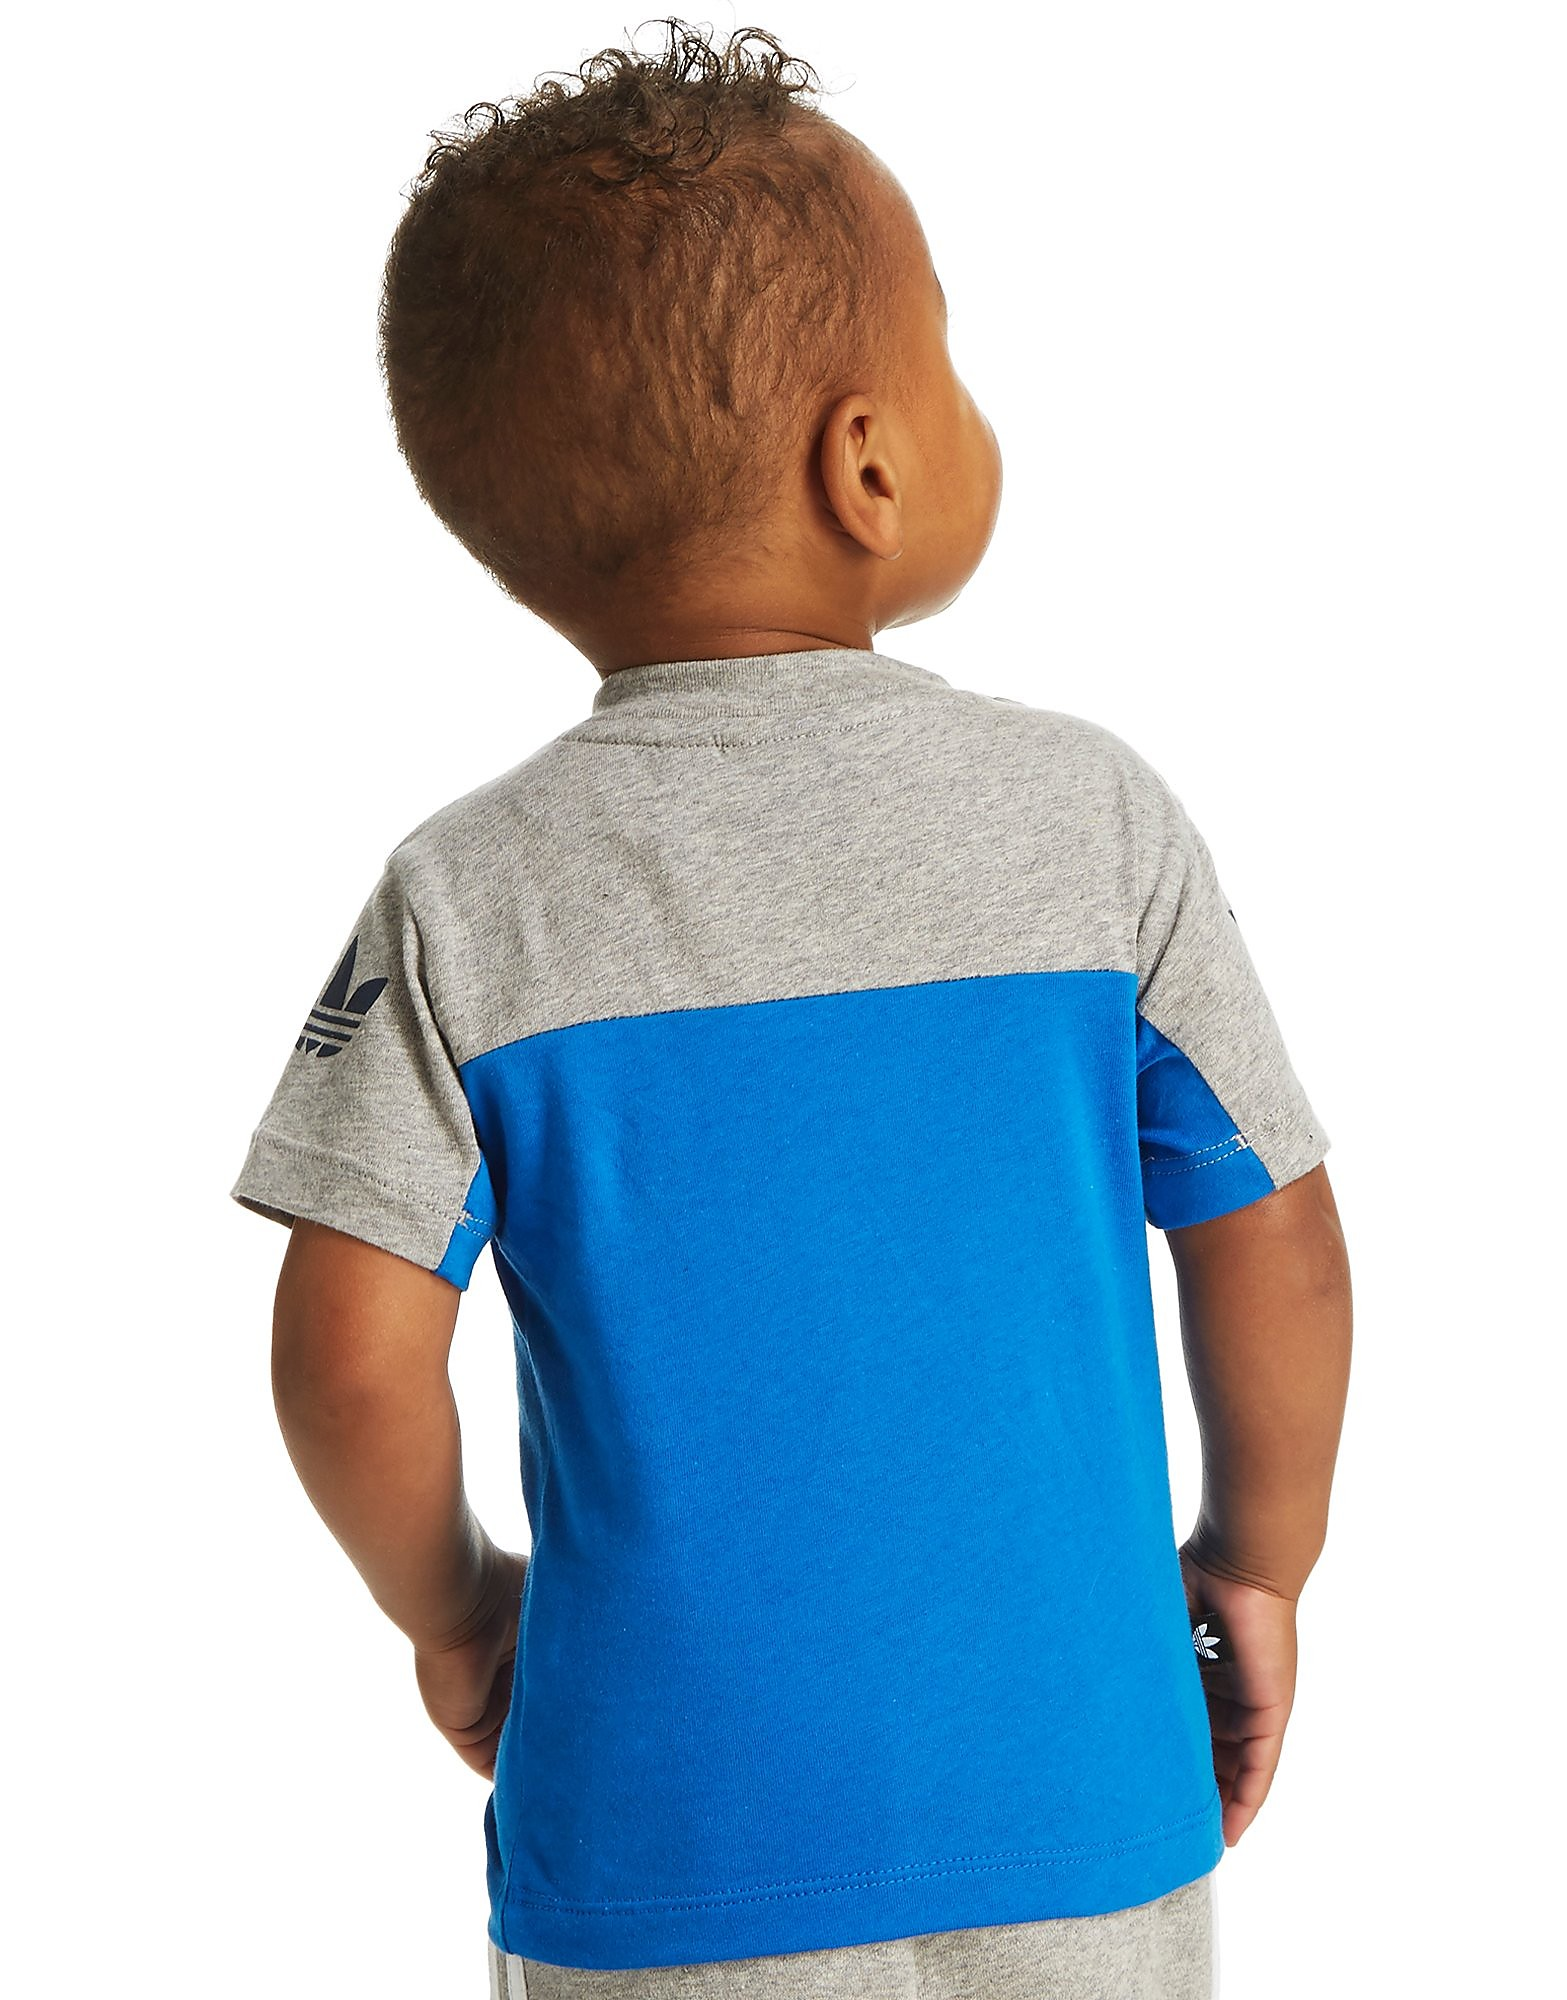 adidas Originals Trefoil Colour Block t-shirt för baby